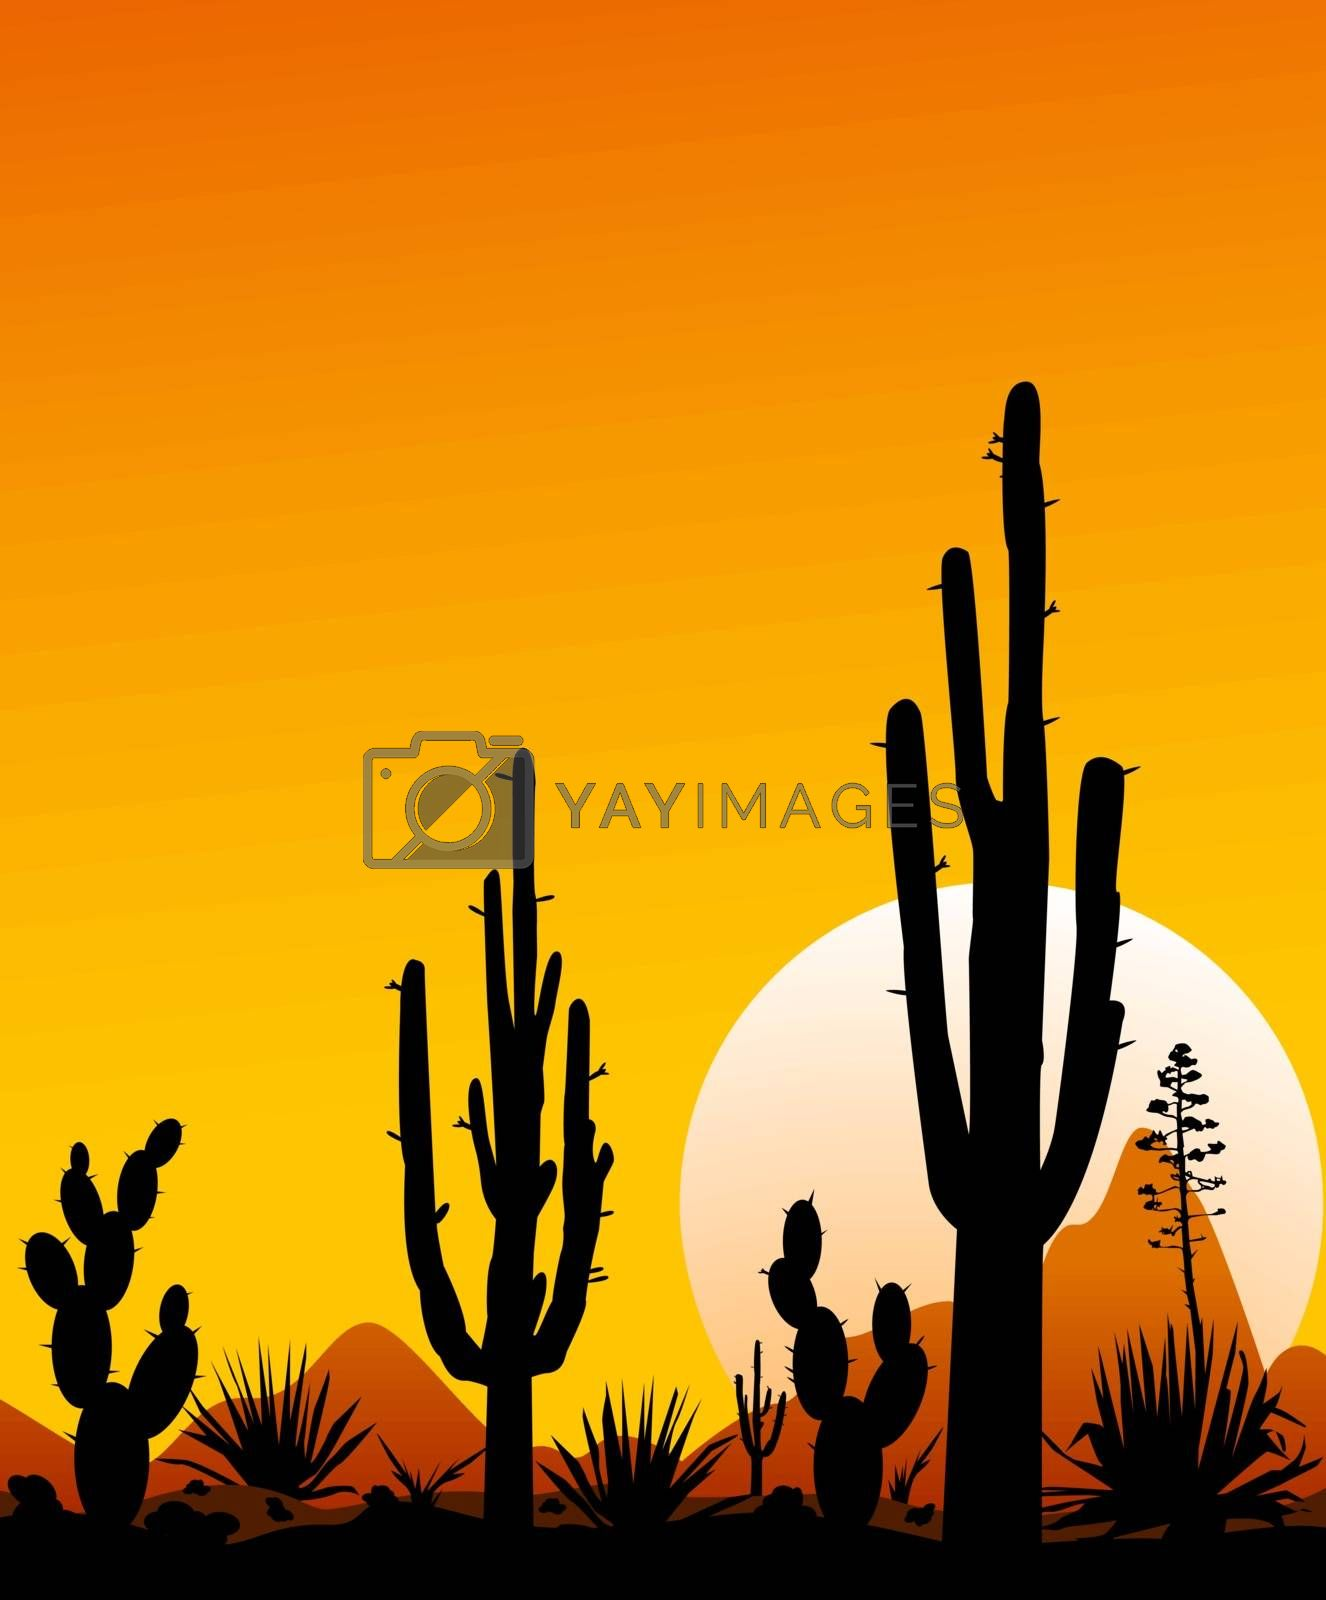 Sunset in the Mexican desert. Silhouettes of stones, cacti and plants. Desert landscape with cacti. The stony desert.